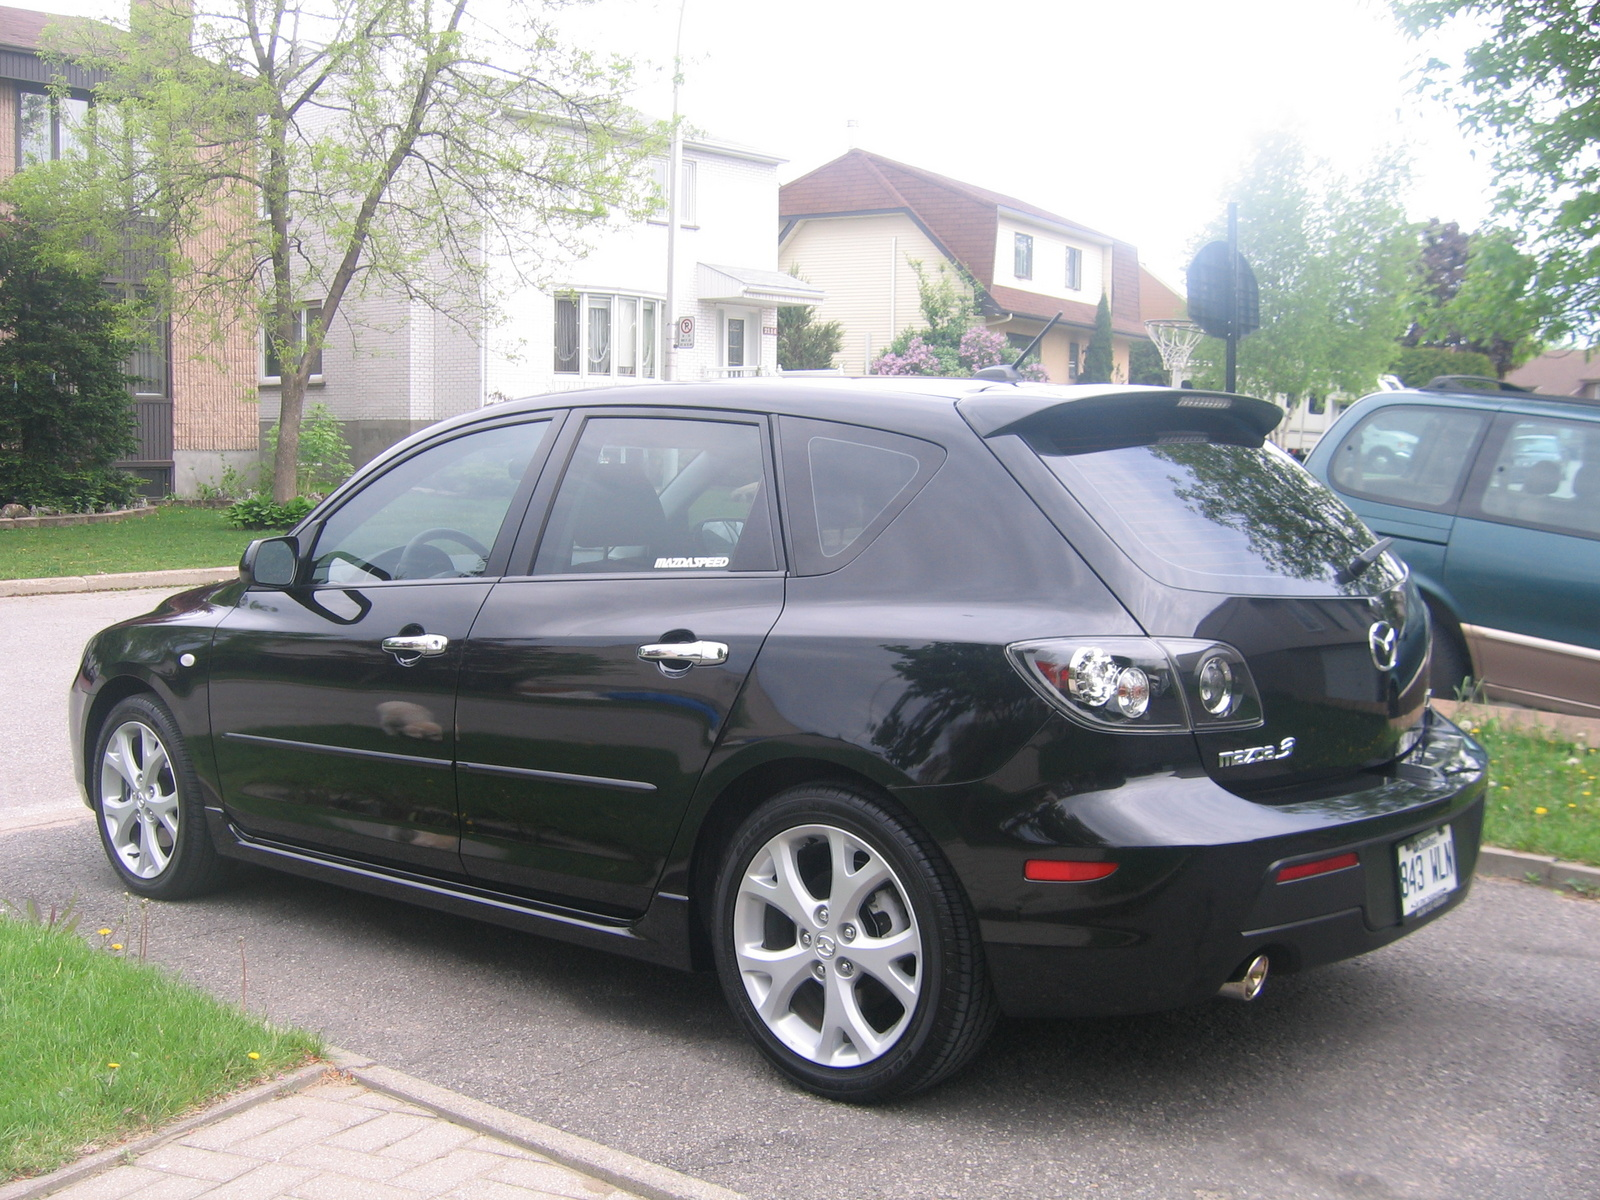 2008 mazda mazda3 exterior pictures cargurus. Black Bedroom Furniture Sets. Home Design Ideas